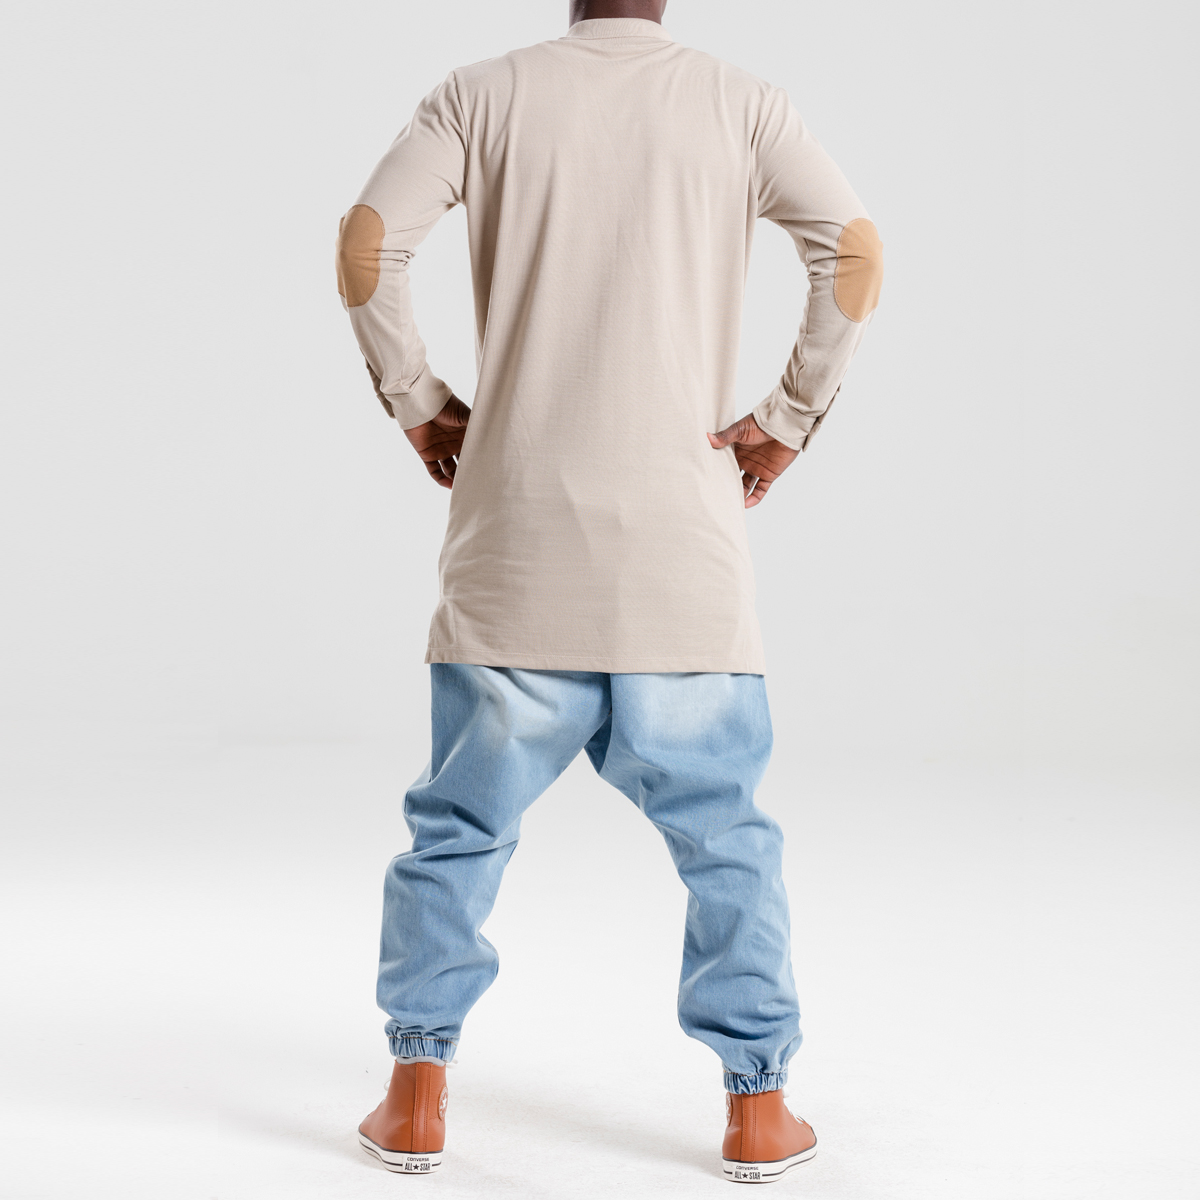 saroual jeans usual blitch dcjeans ensemble dos